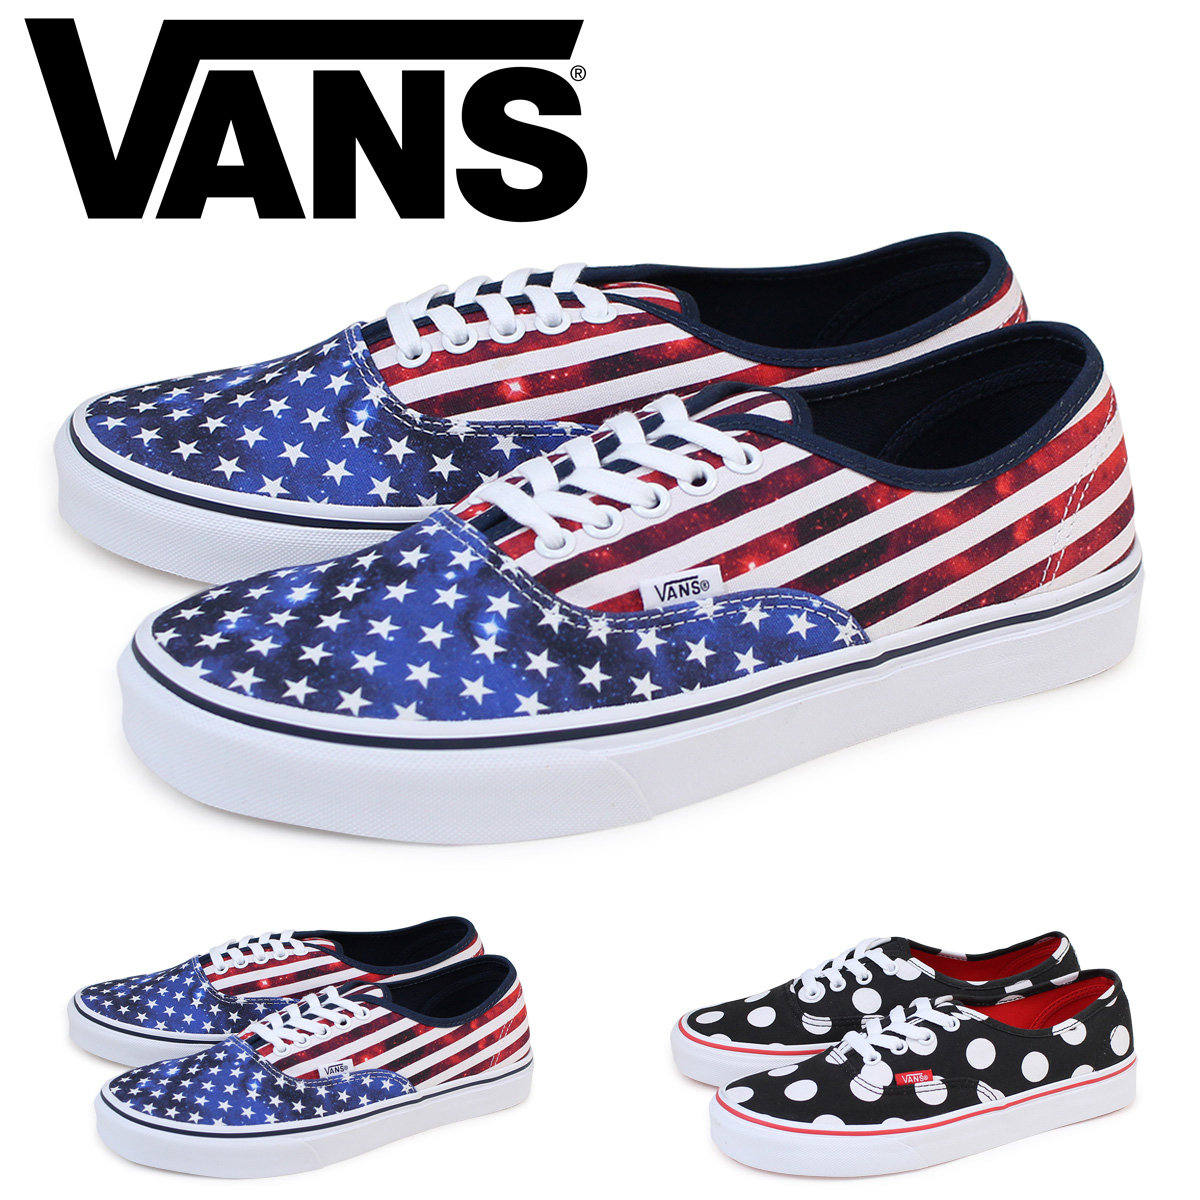 1f9914a6f4 VANS authentic vans slip-ons men sneakers station wagons AUTHENTIC  VN0004MLJOD VN0004MLJPD shoes  1 18 Shinnyu load